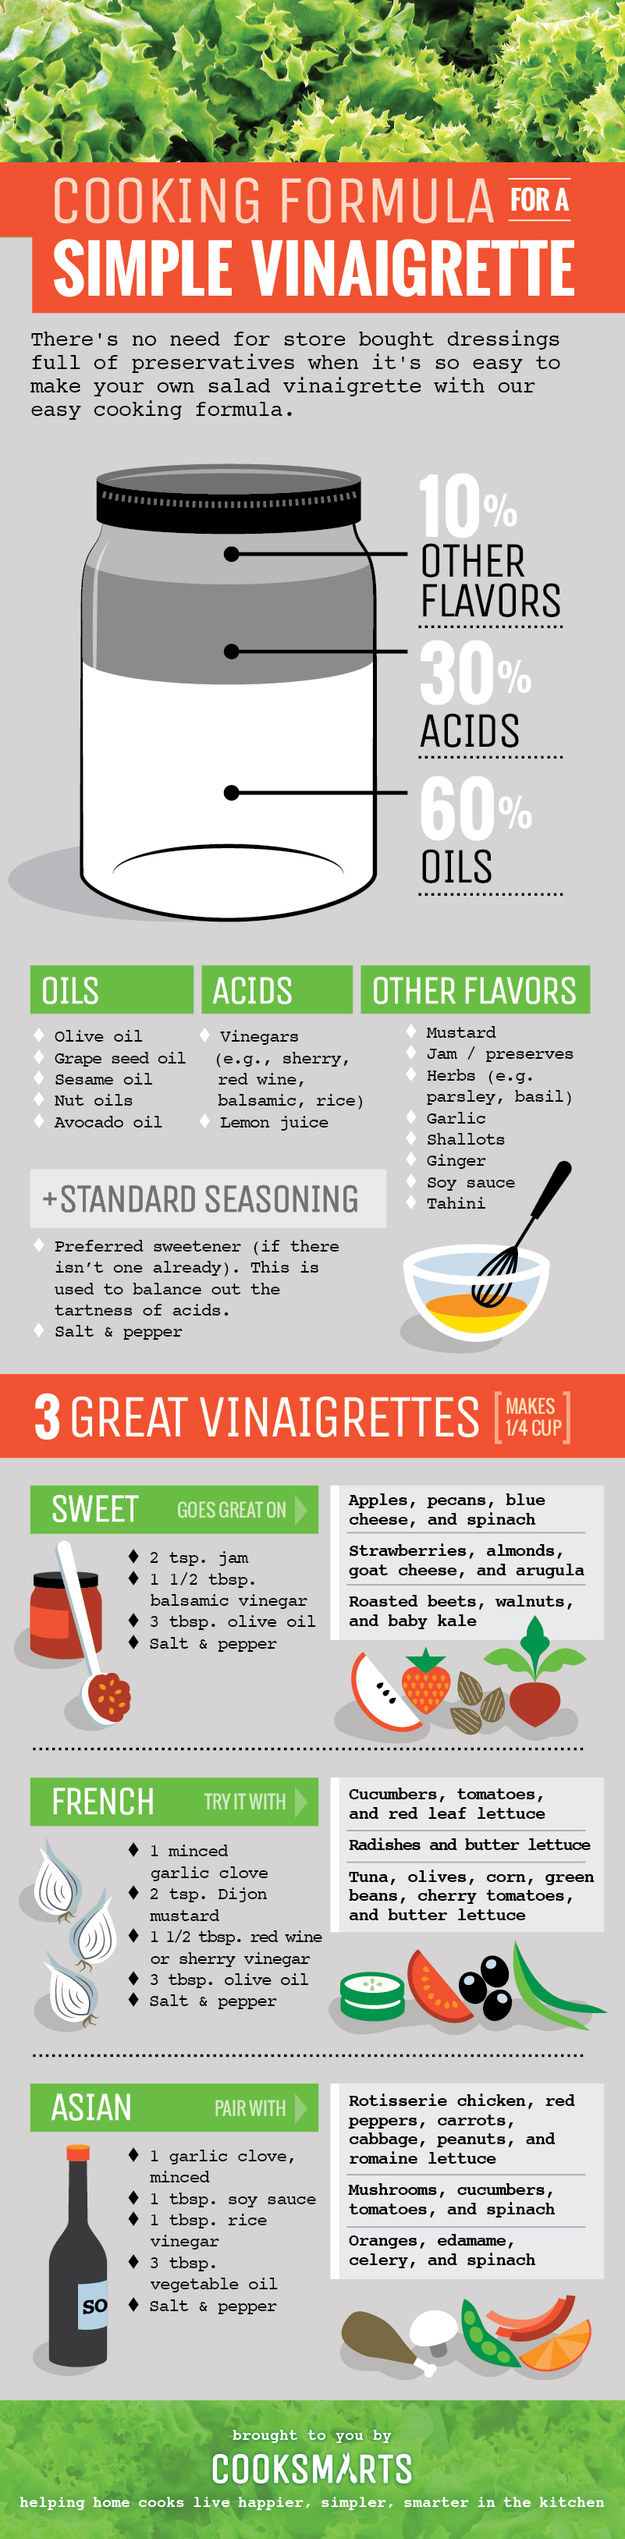 For making your own vinaigrette